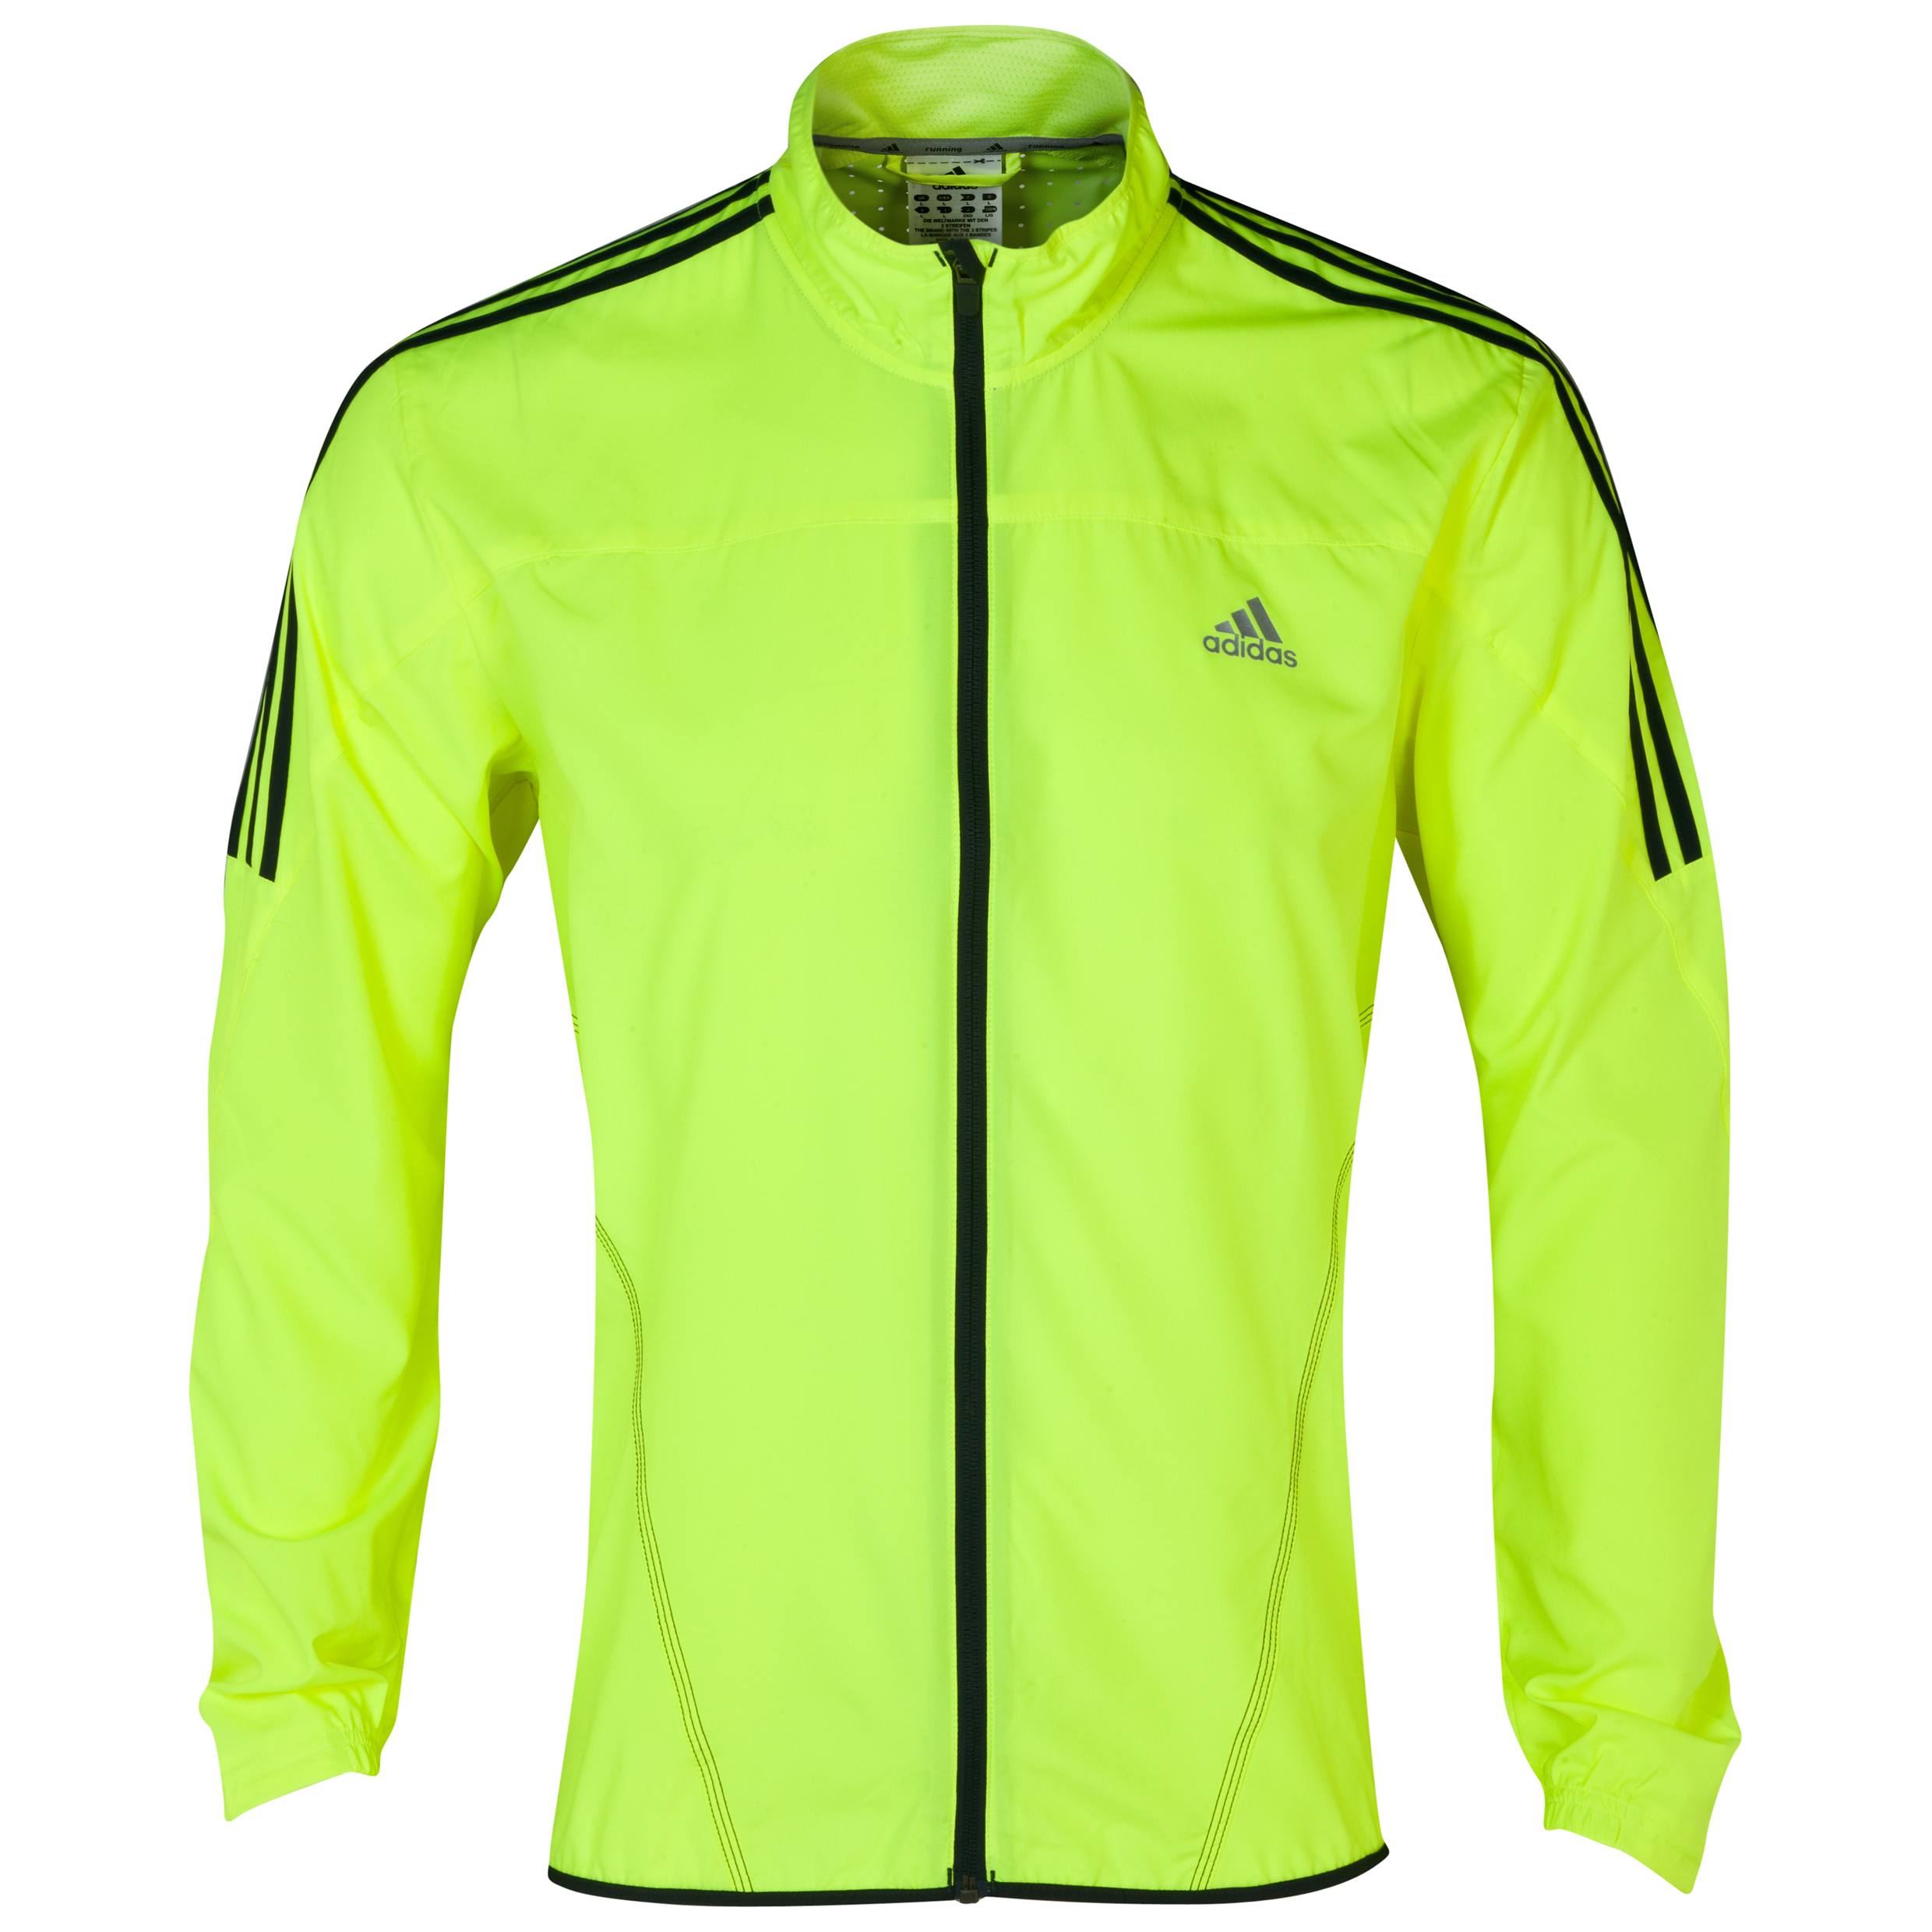 Adidas Response Jacket - Electricity/Night Shade Blue